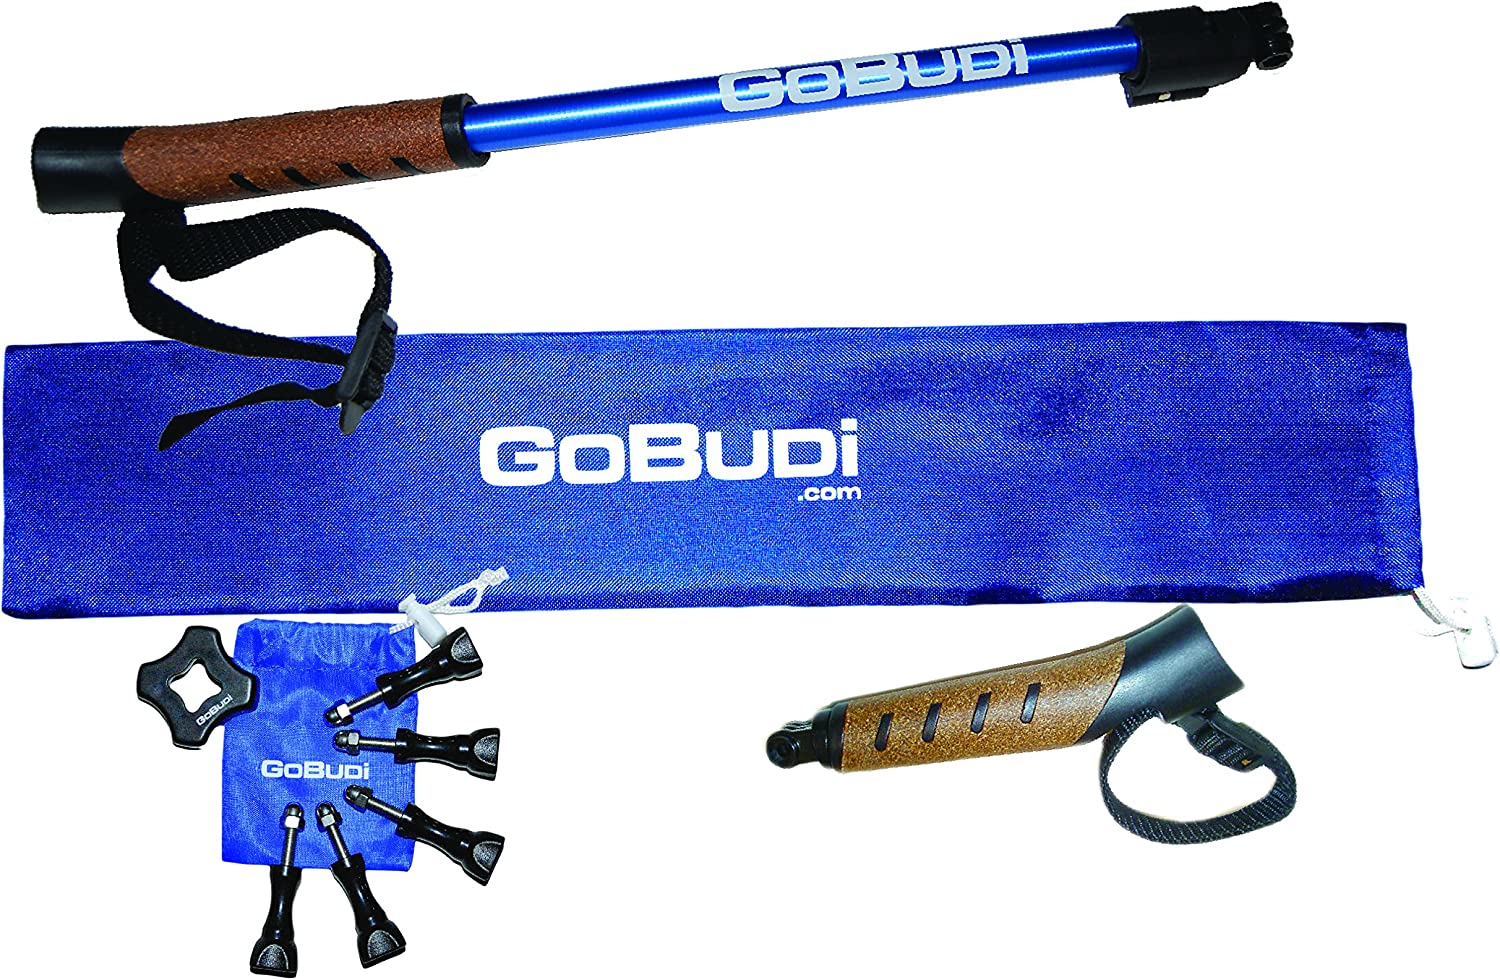 Includes 3 Extensions and Bolts Compatible with All GoPro Hero Cameras GoBUDi Extension Pole Set